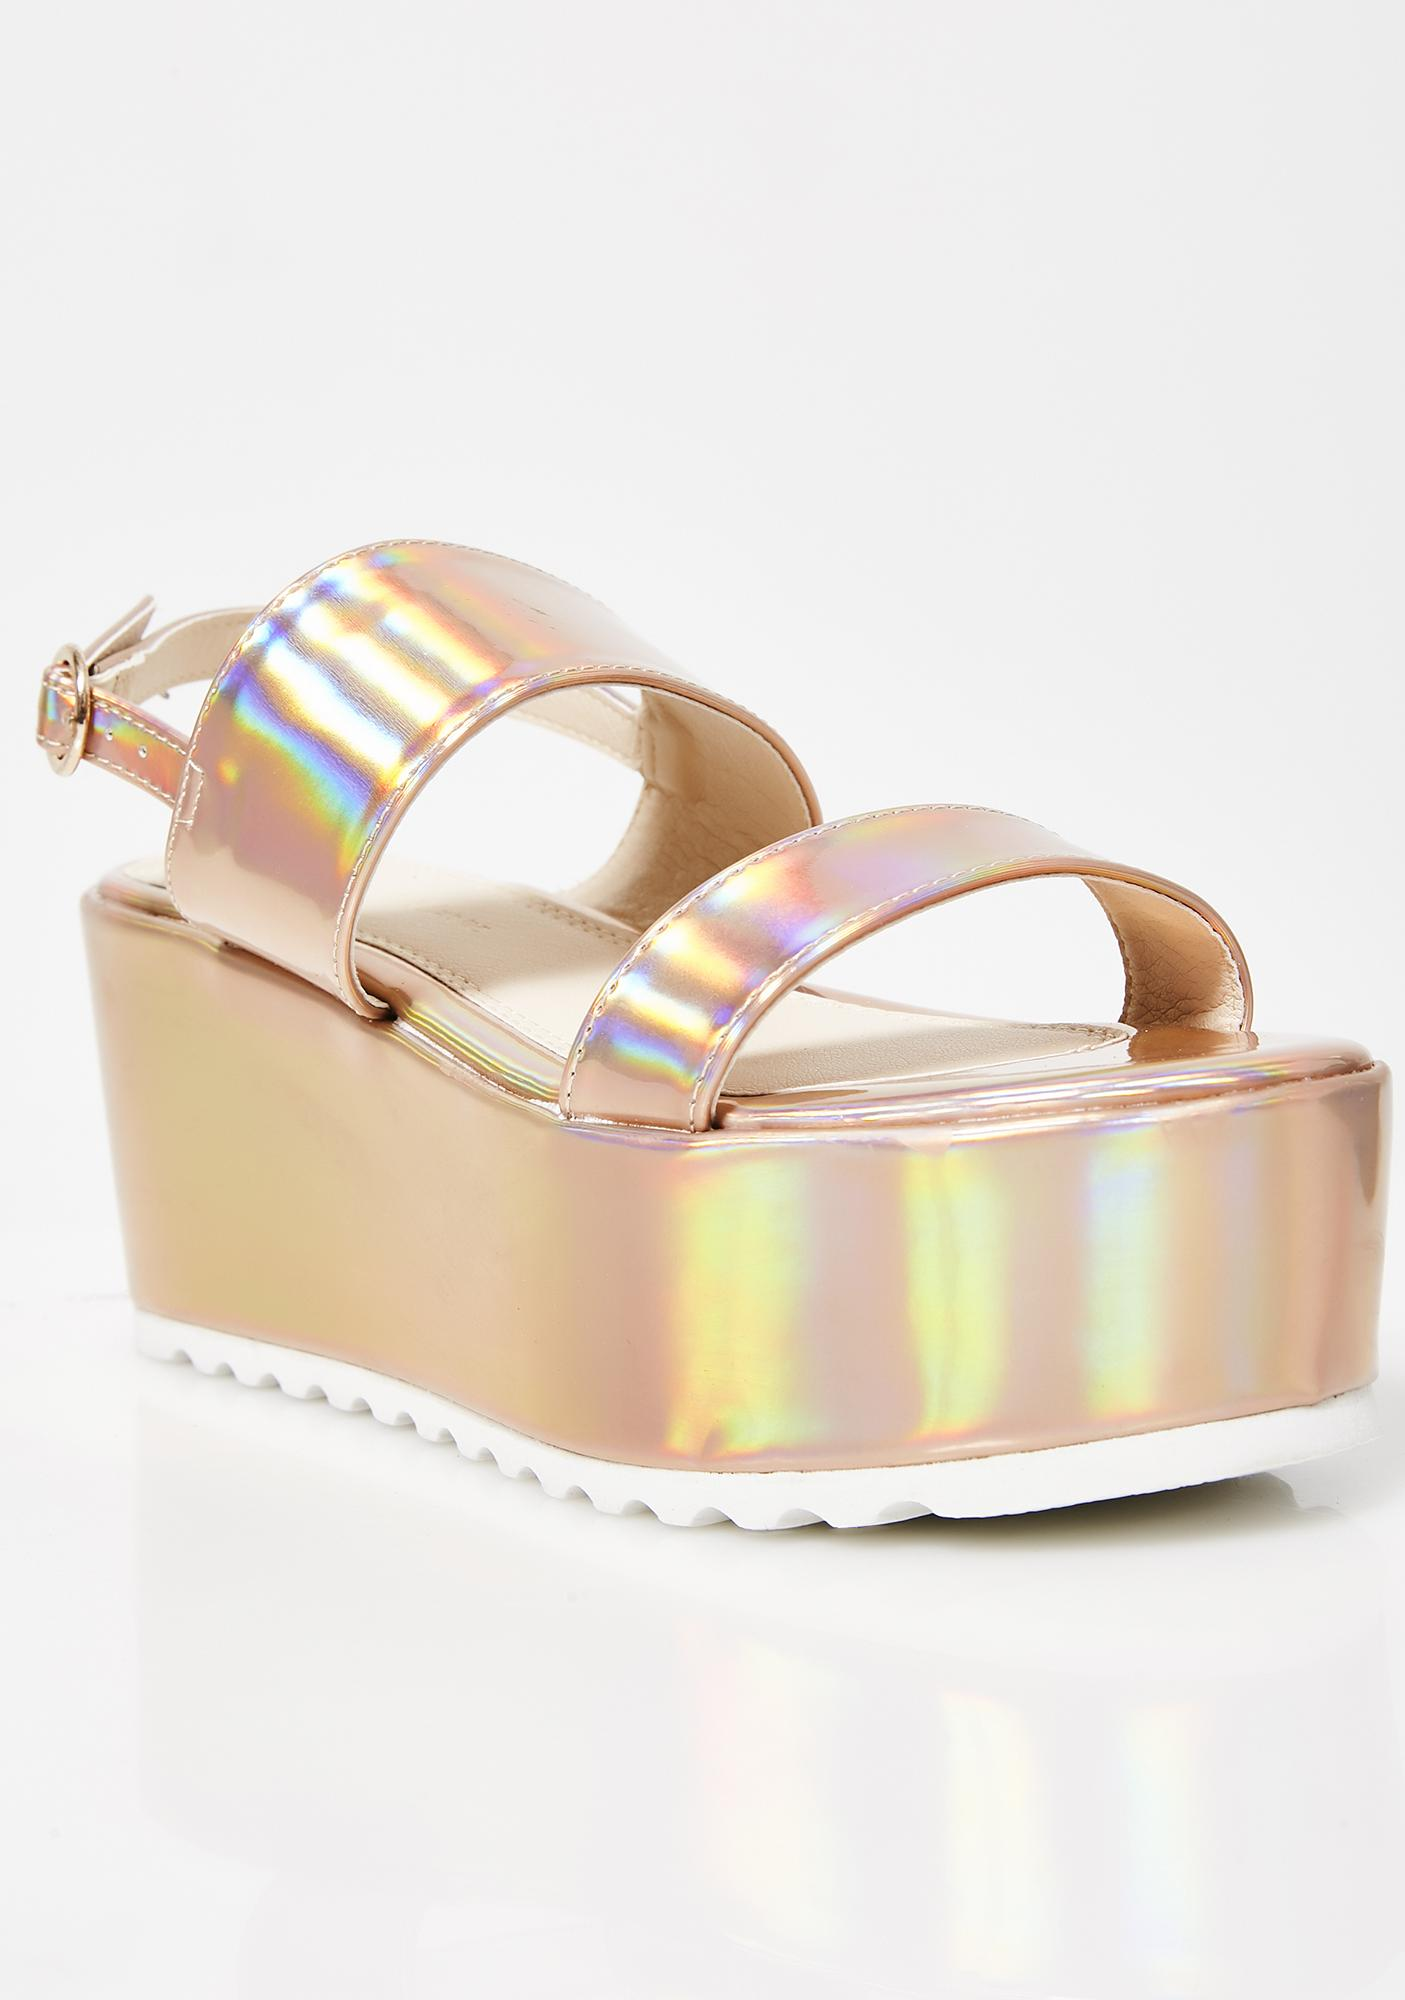 758beadefe8323 ... Rose Cosmic Bae Of Light Hologram Platforms